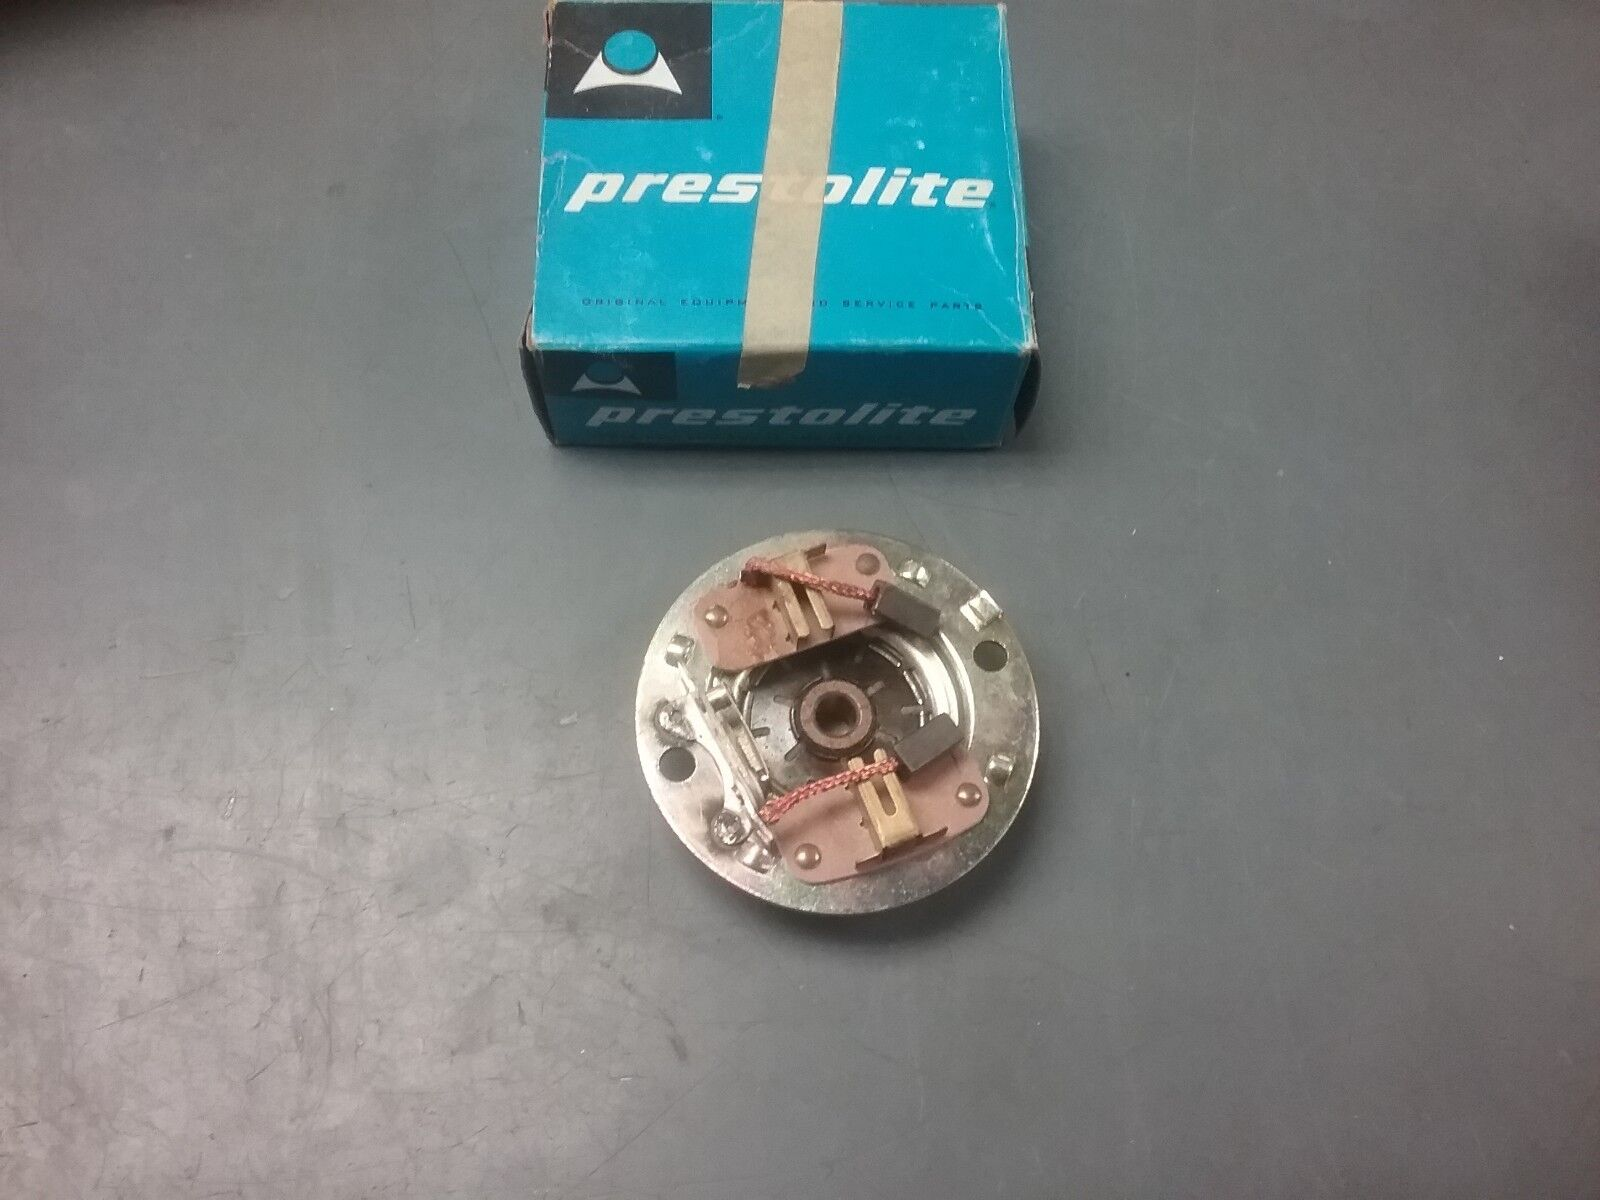 Commutator head assembly for a Johnson or Evinrude outboard motor 382545